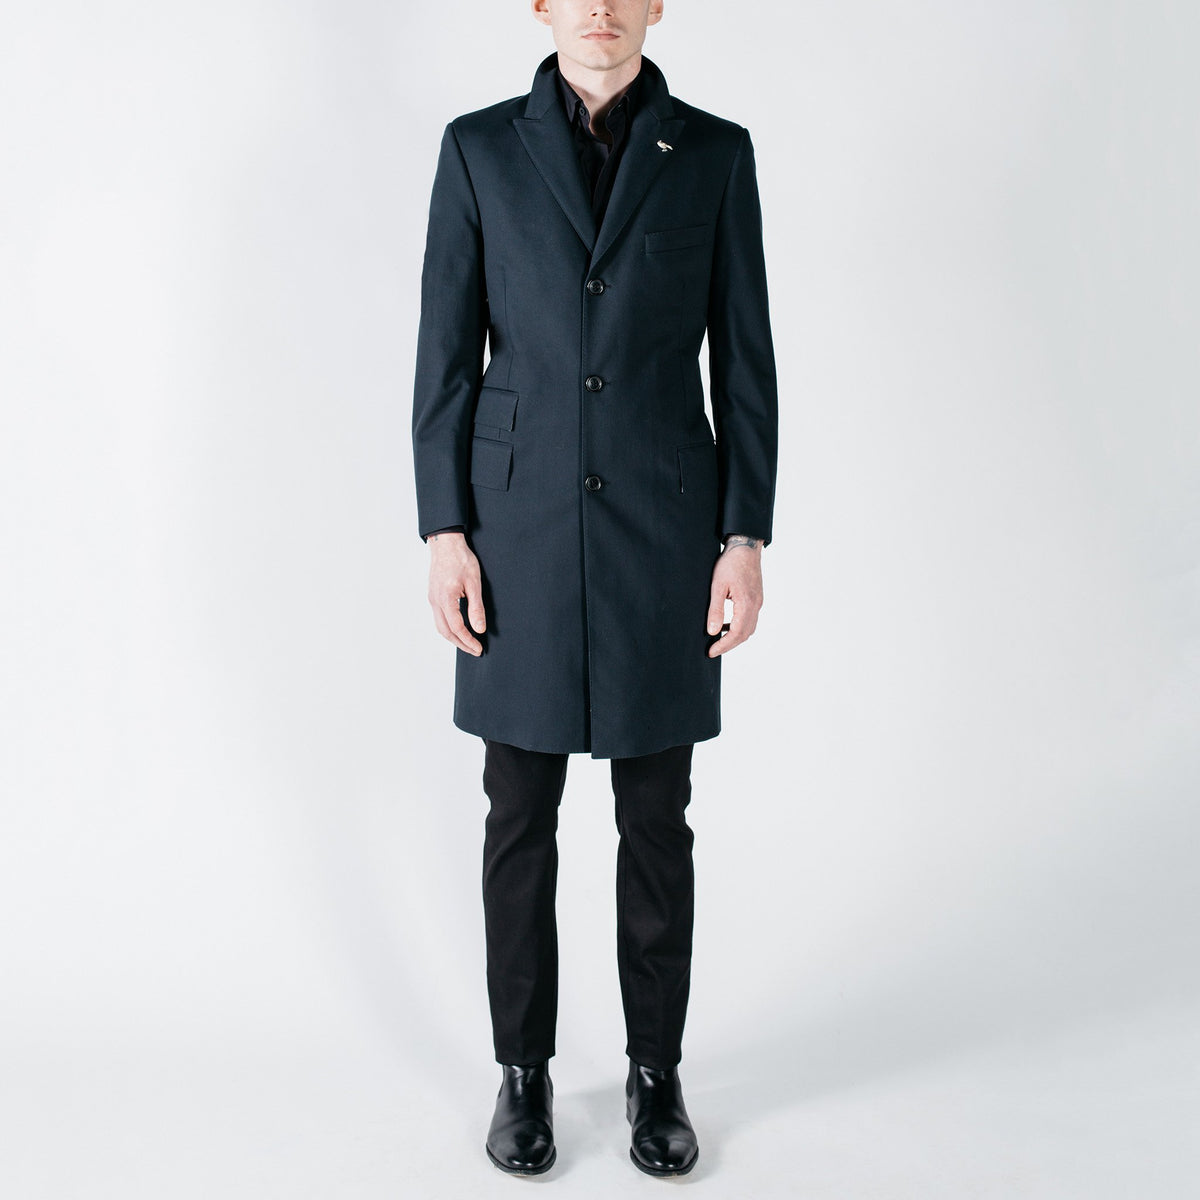 CORE // Black Tech Raincoat